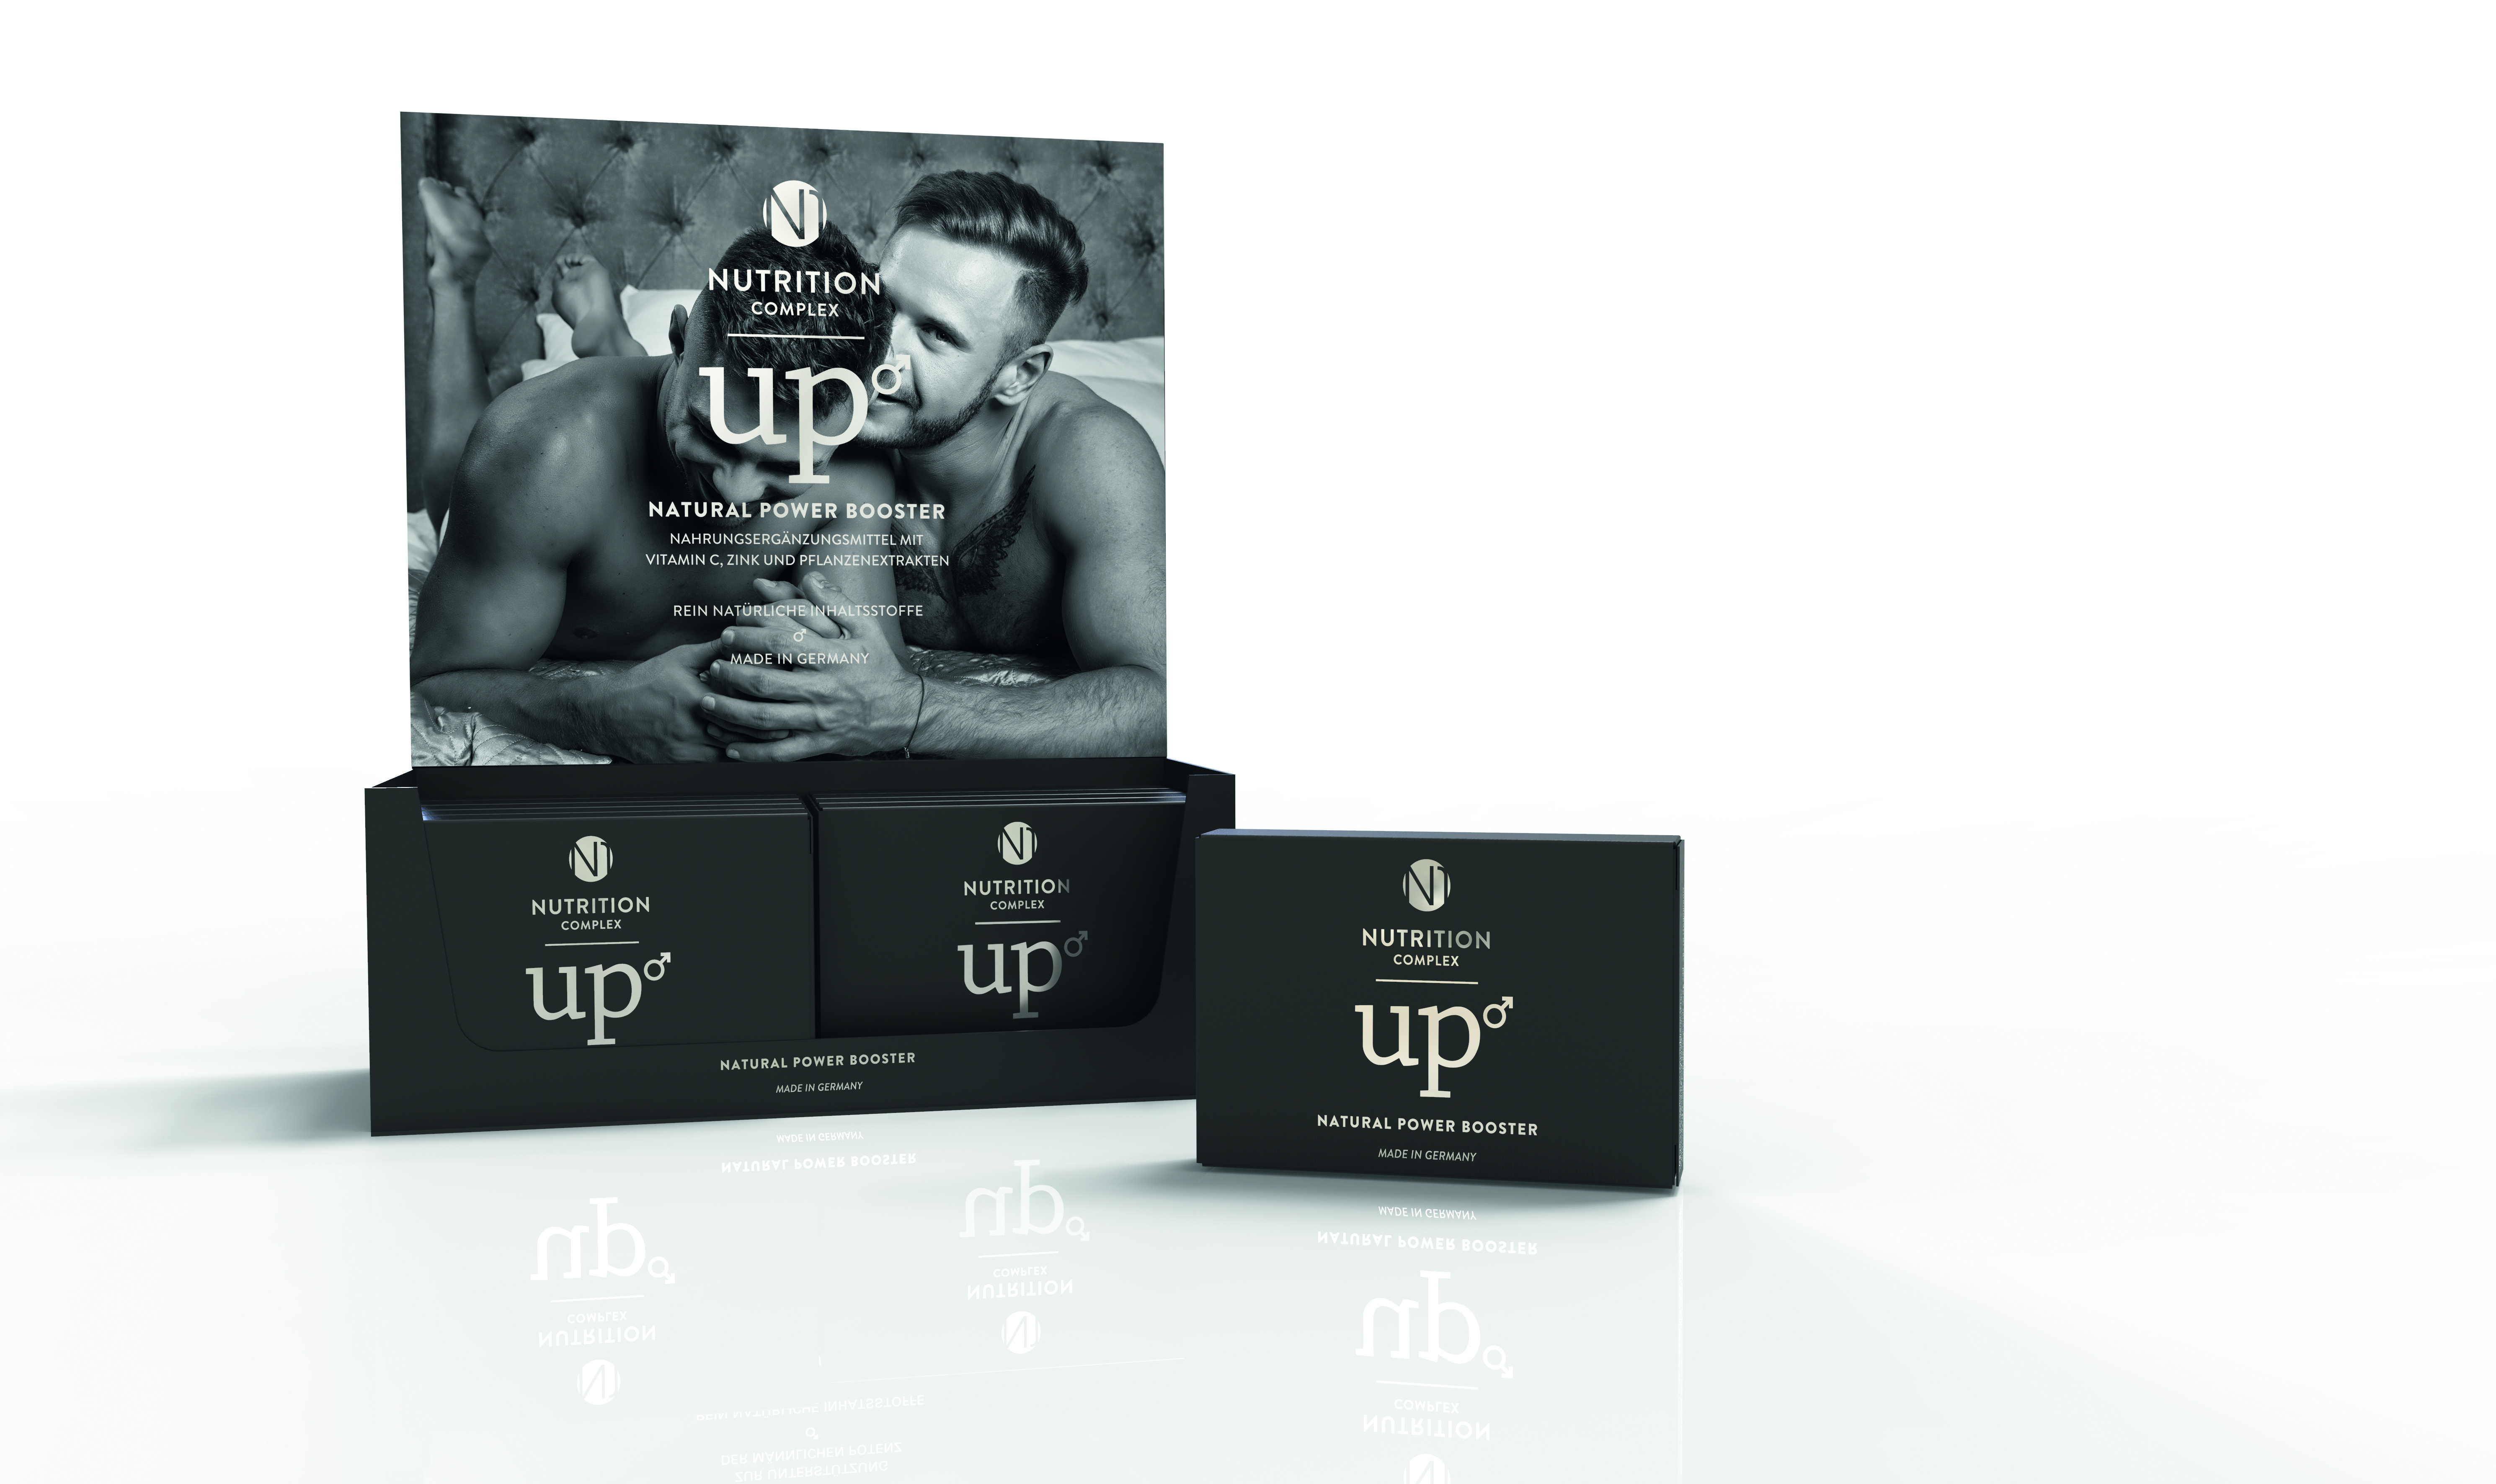 N1 UP Gay Display (inc 10 packs)